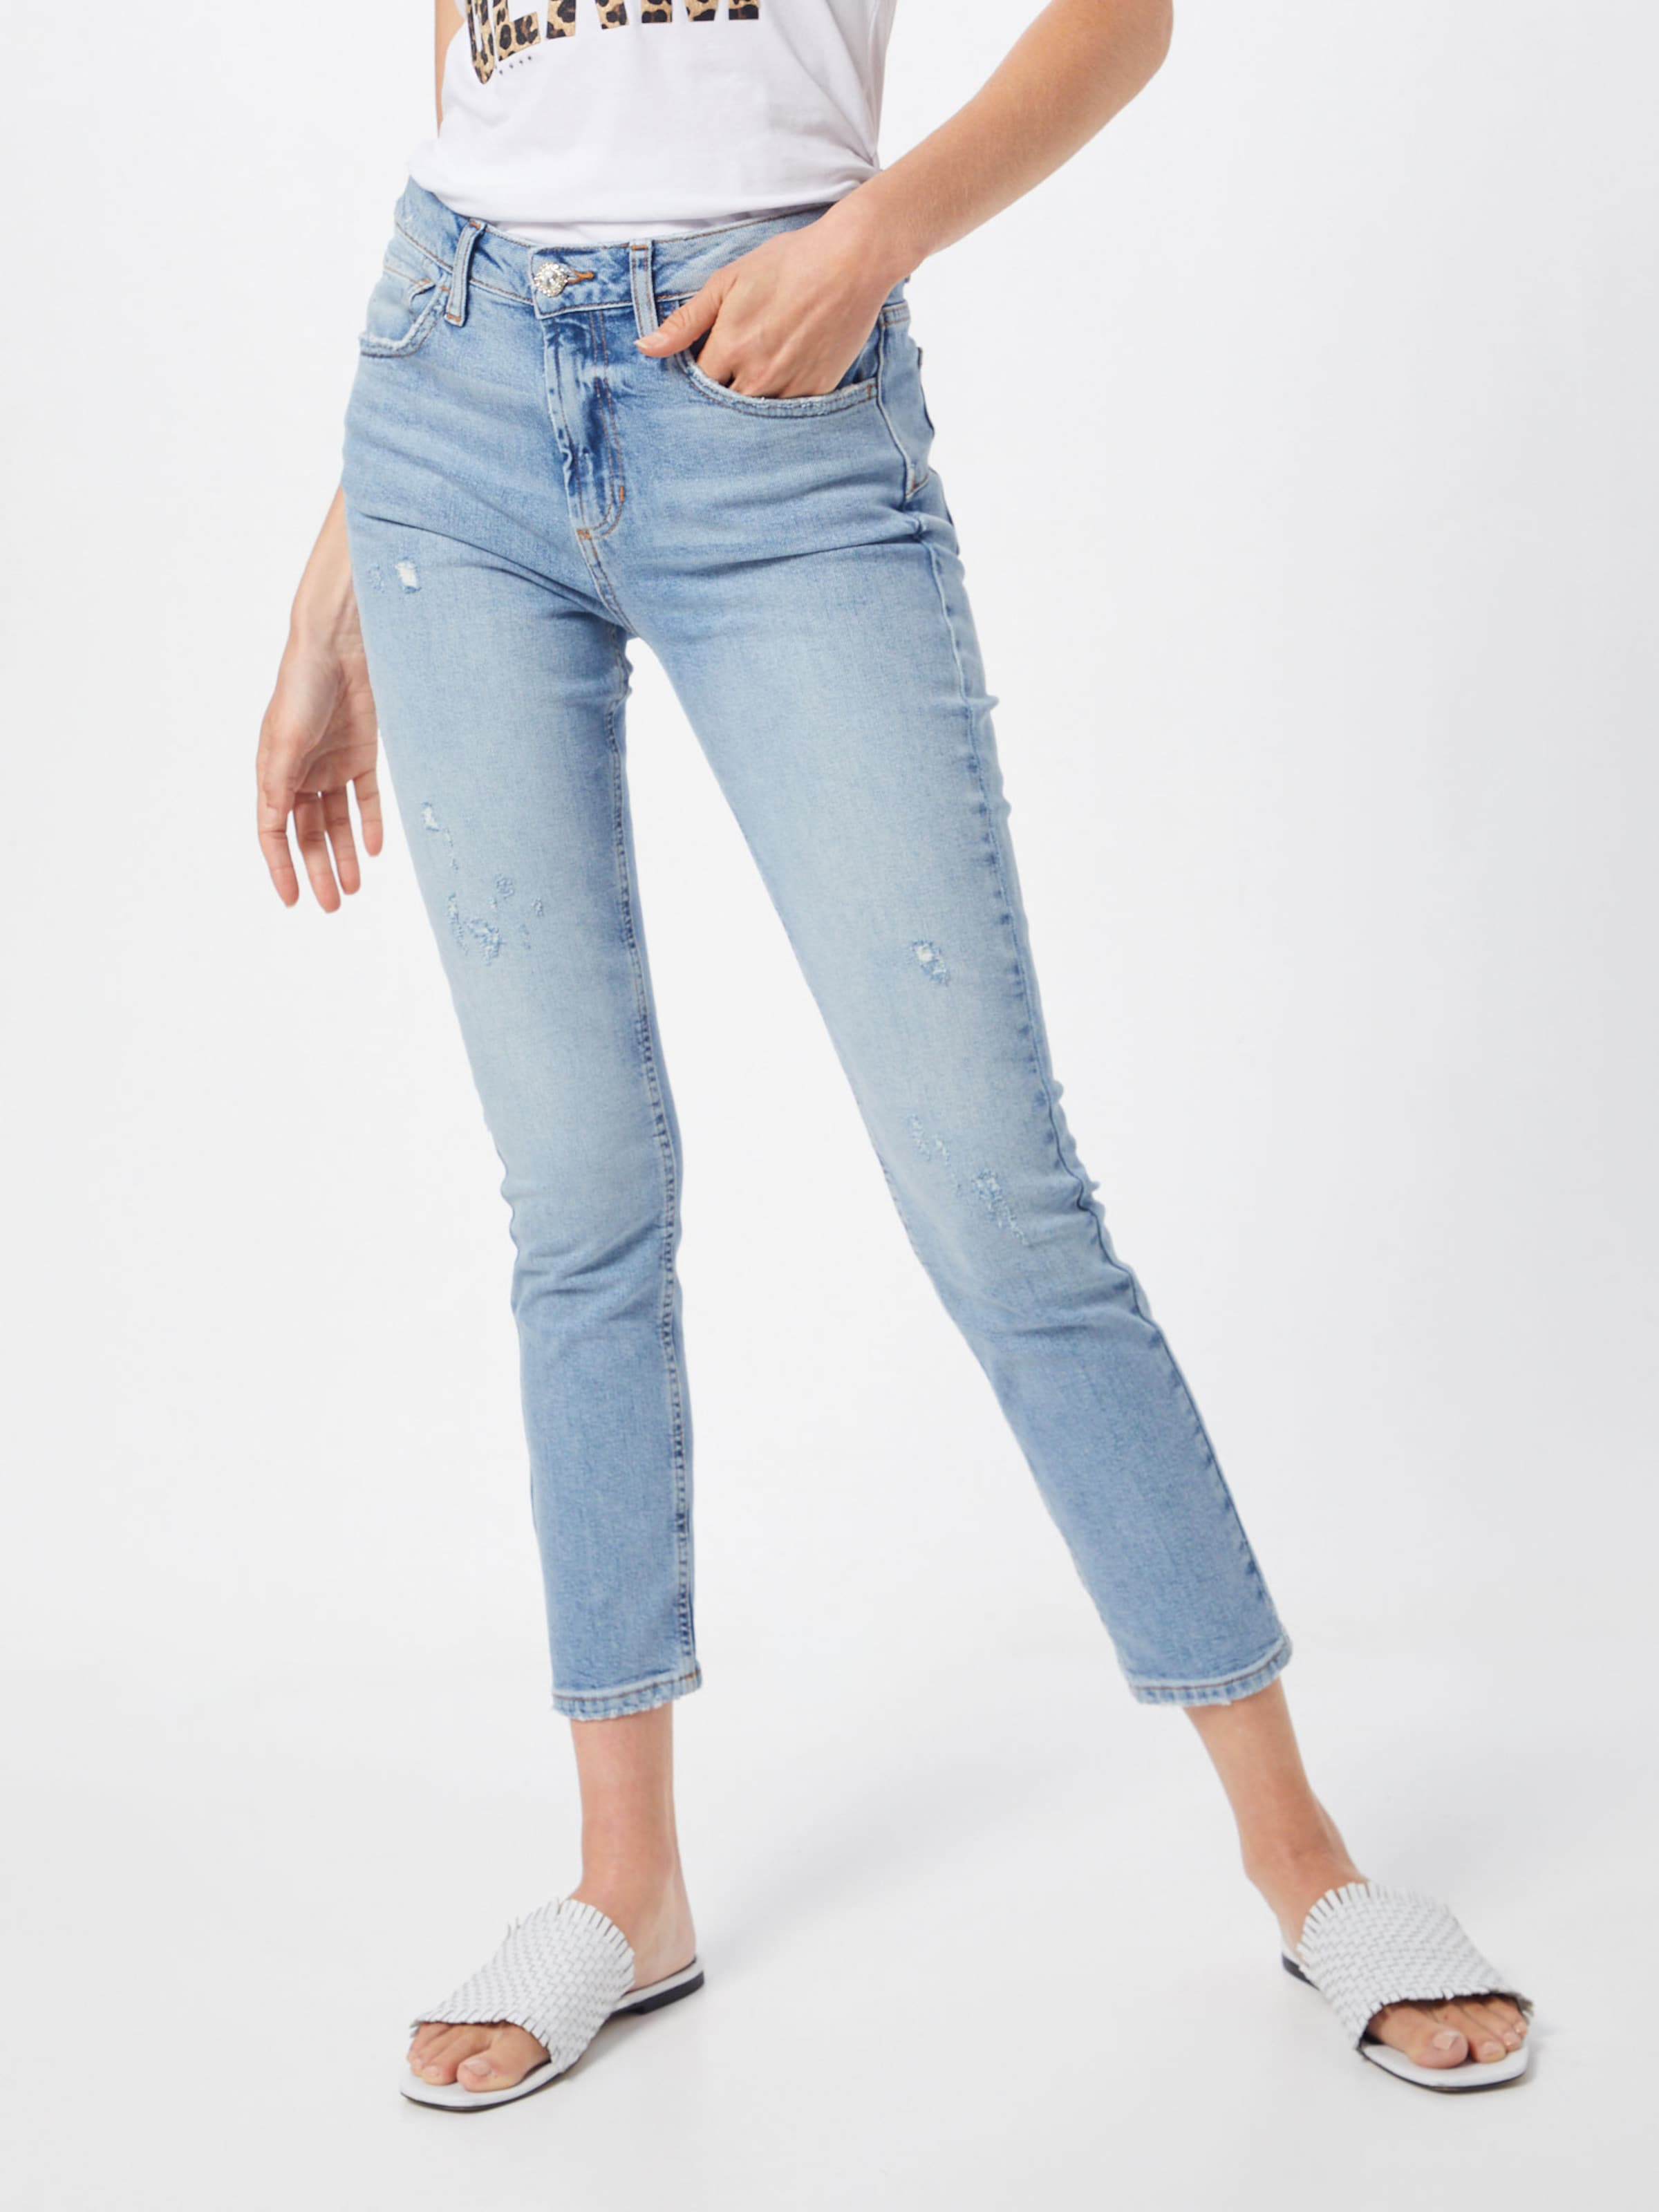 Denim Jo Cute Jeans In up ' Liu w H 'b Blue 76gfyb